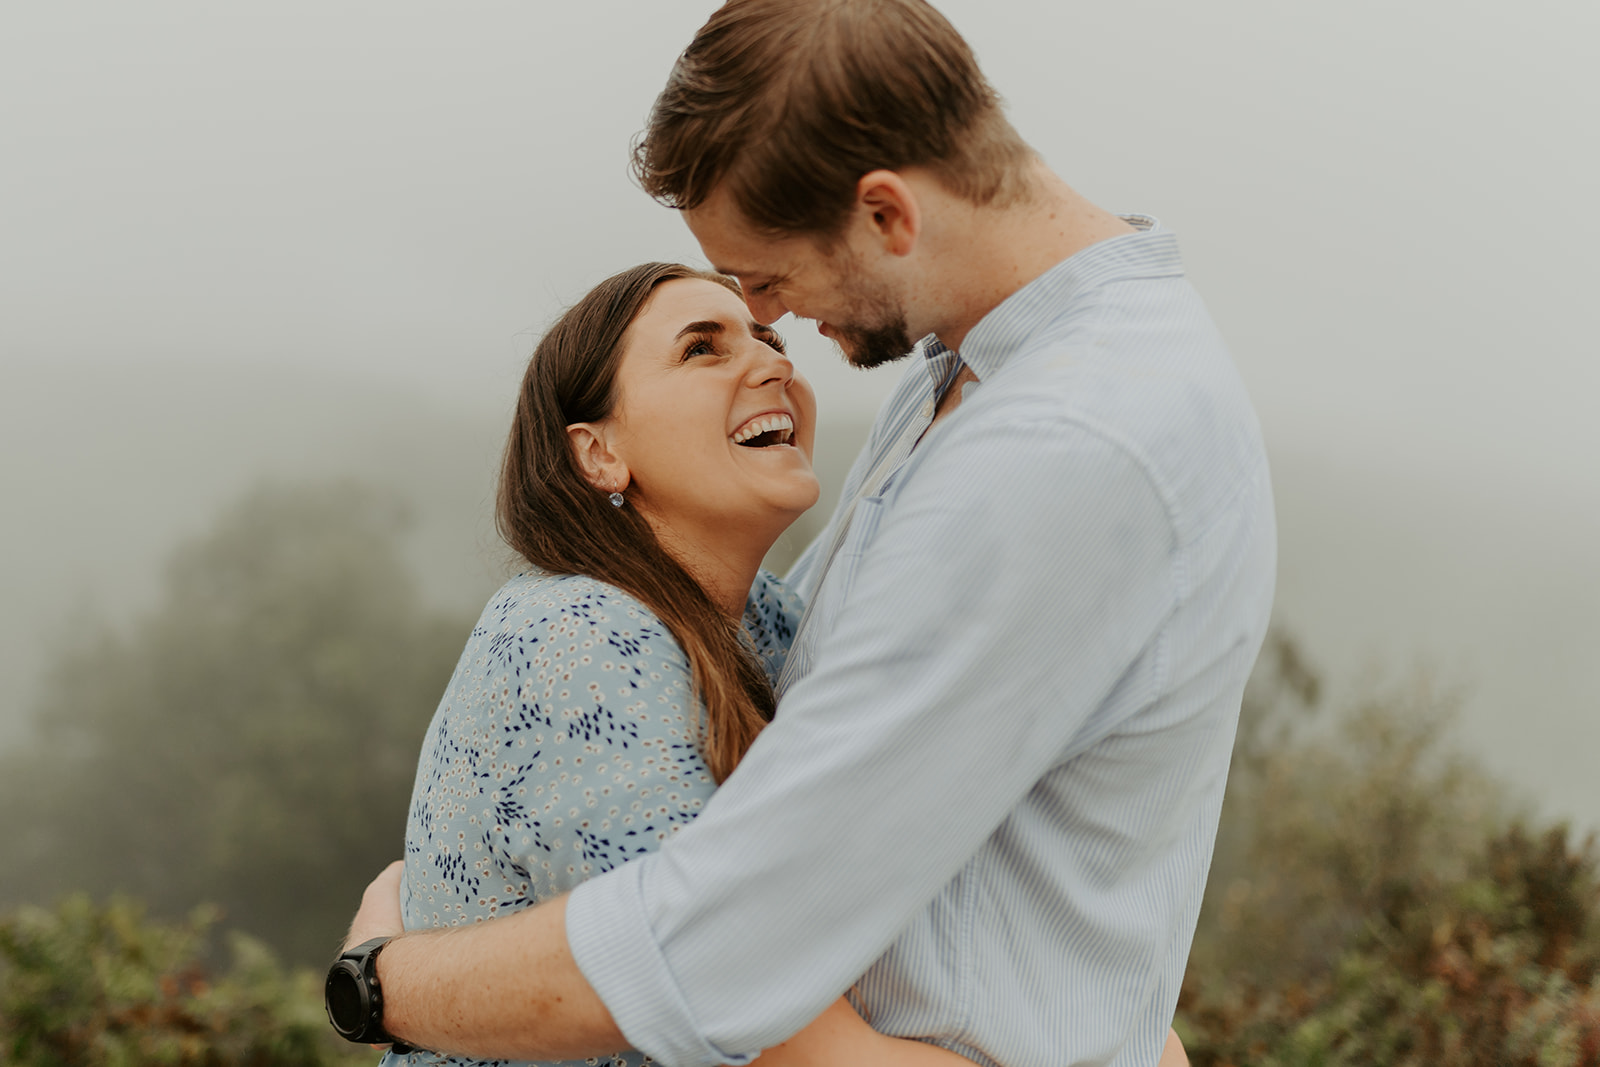 engagement-shoot-couples-session-outdoors-kinver-edge-dog